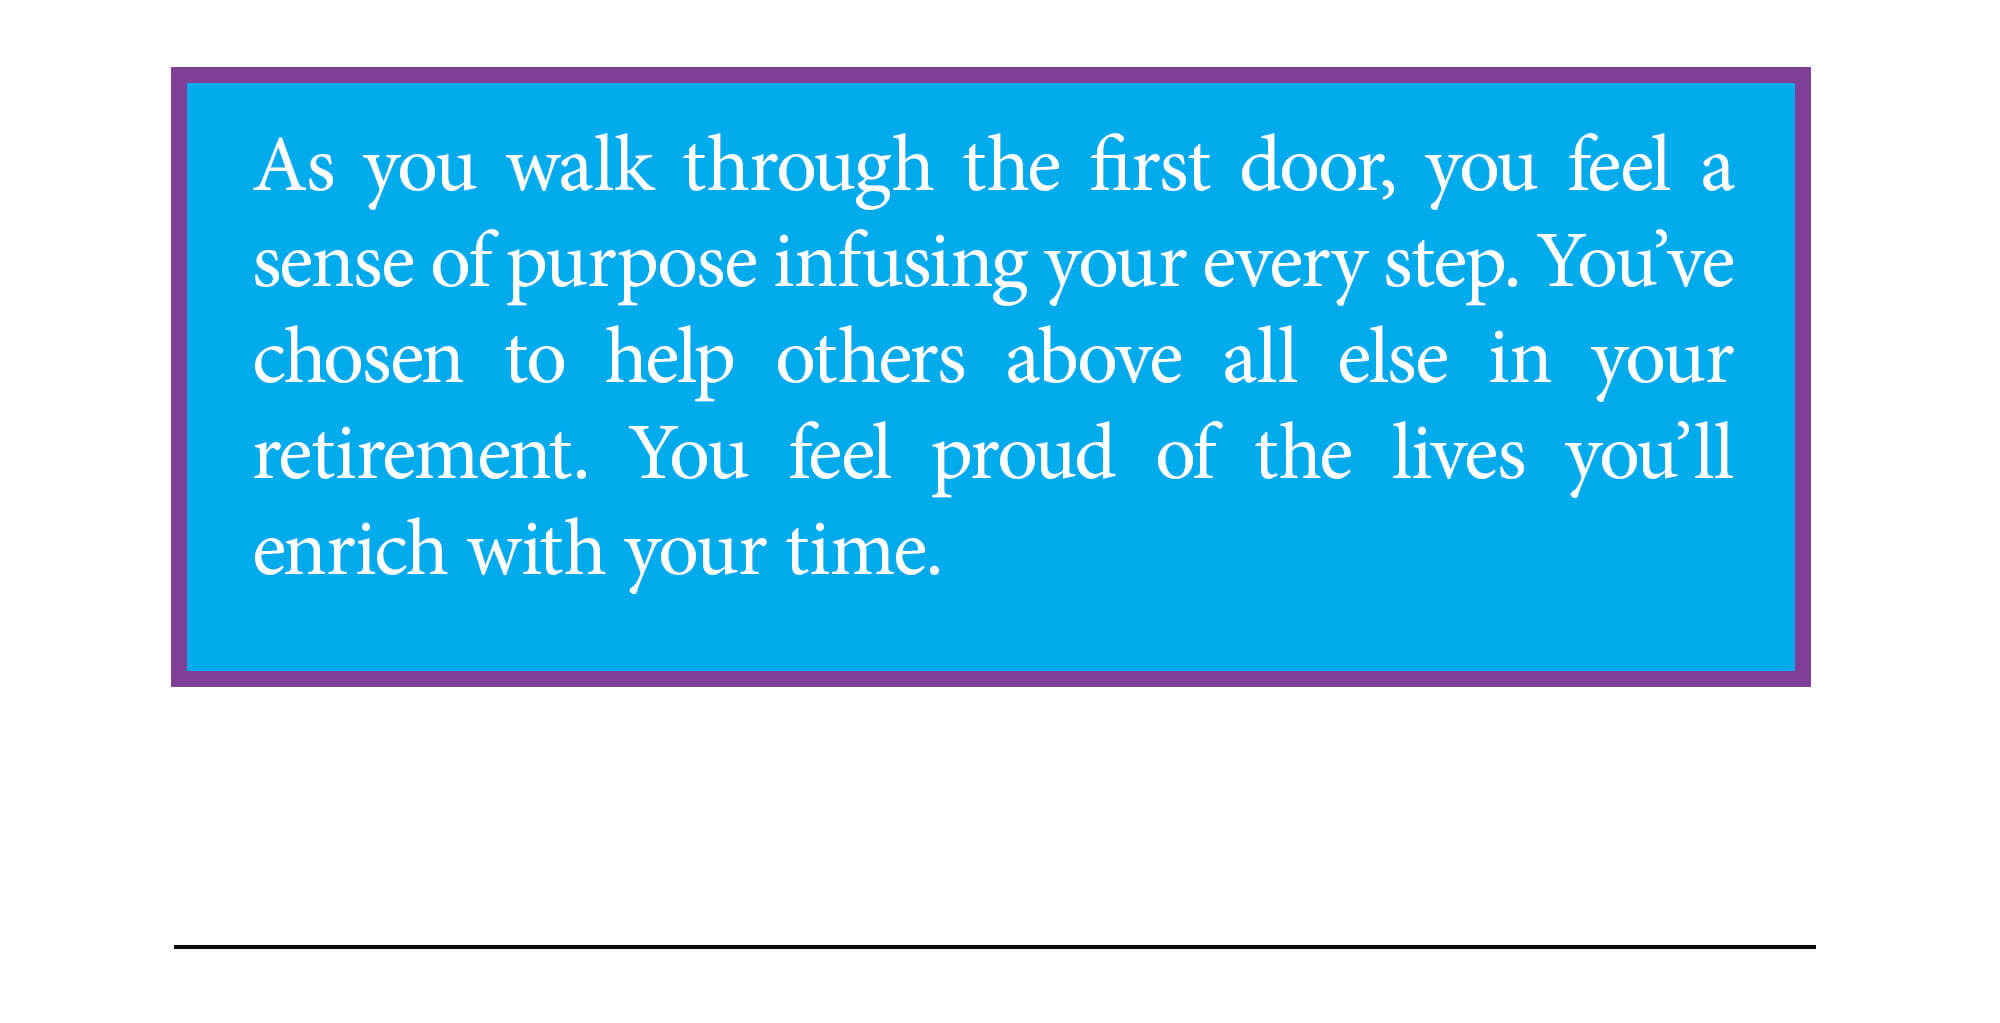 Door 1 ending. As you walk through the first door, you feel a sense of purpose infusing your every step. You've chosen to help others above all else in your retirement. You feel proud of the lives you'll enrich with your time. Continue to ending 2 below.